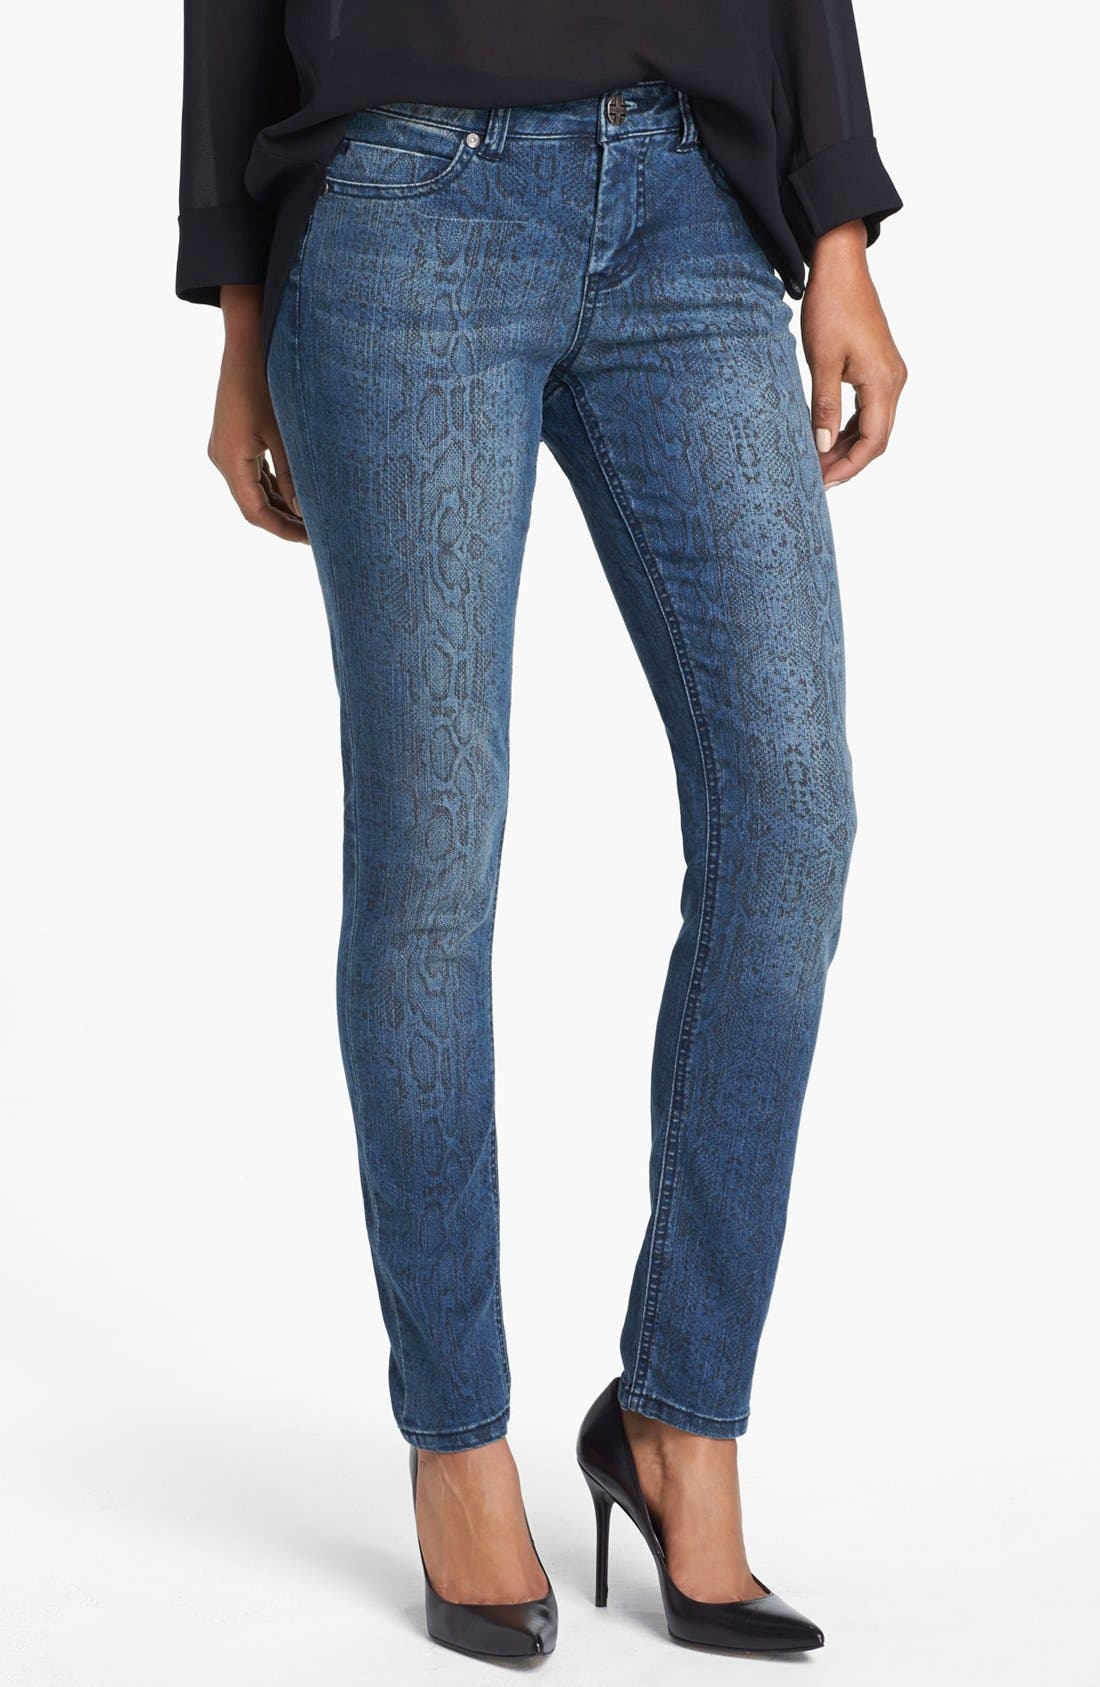 Alternate Image 1 Selected - Liverpool Jeans Company 'Abby' Print Skinny Jeans